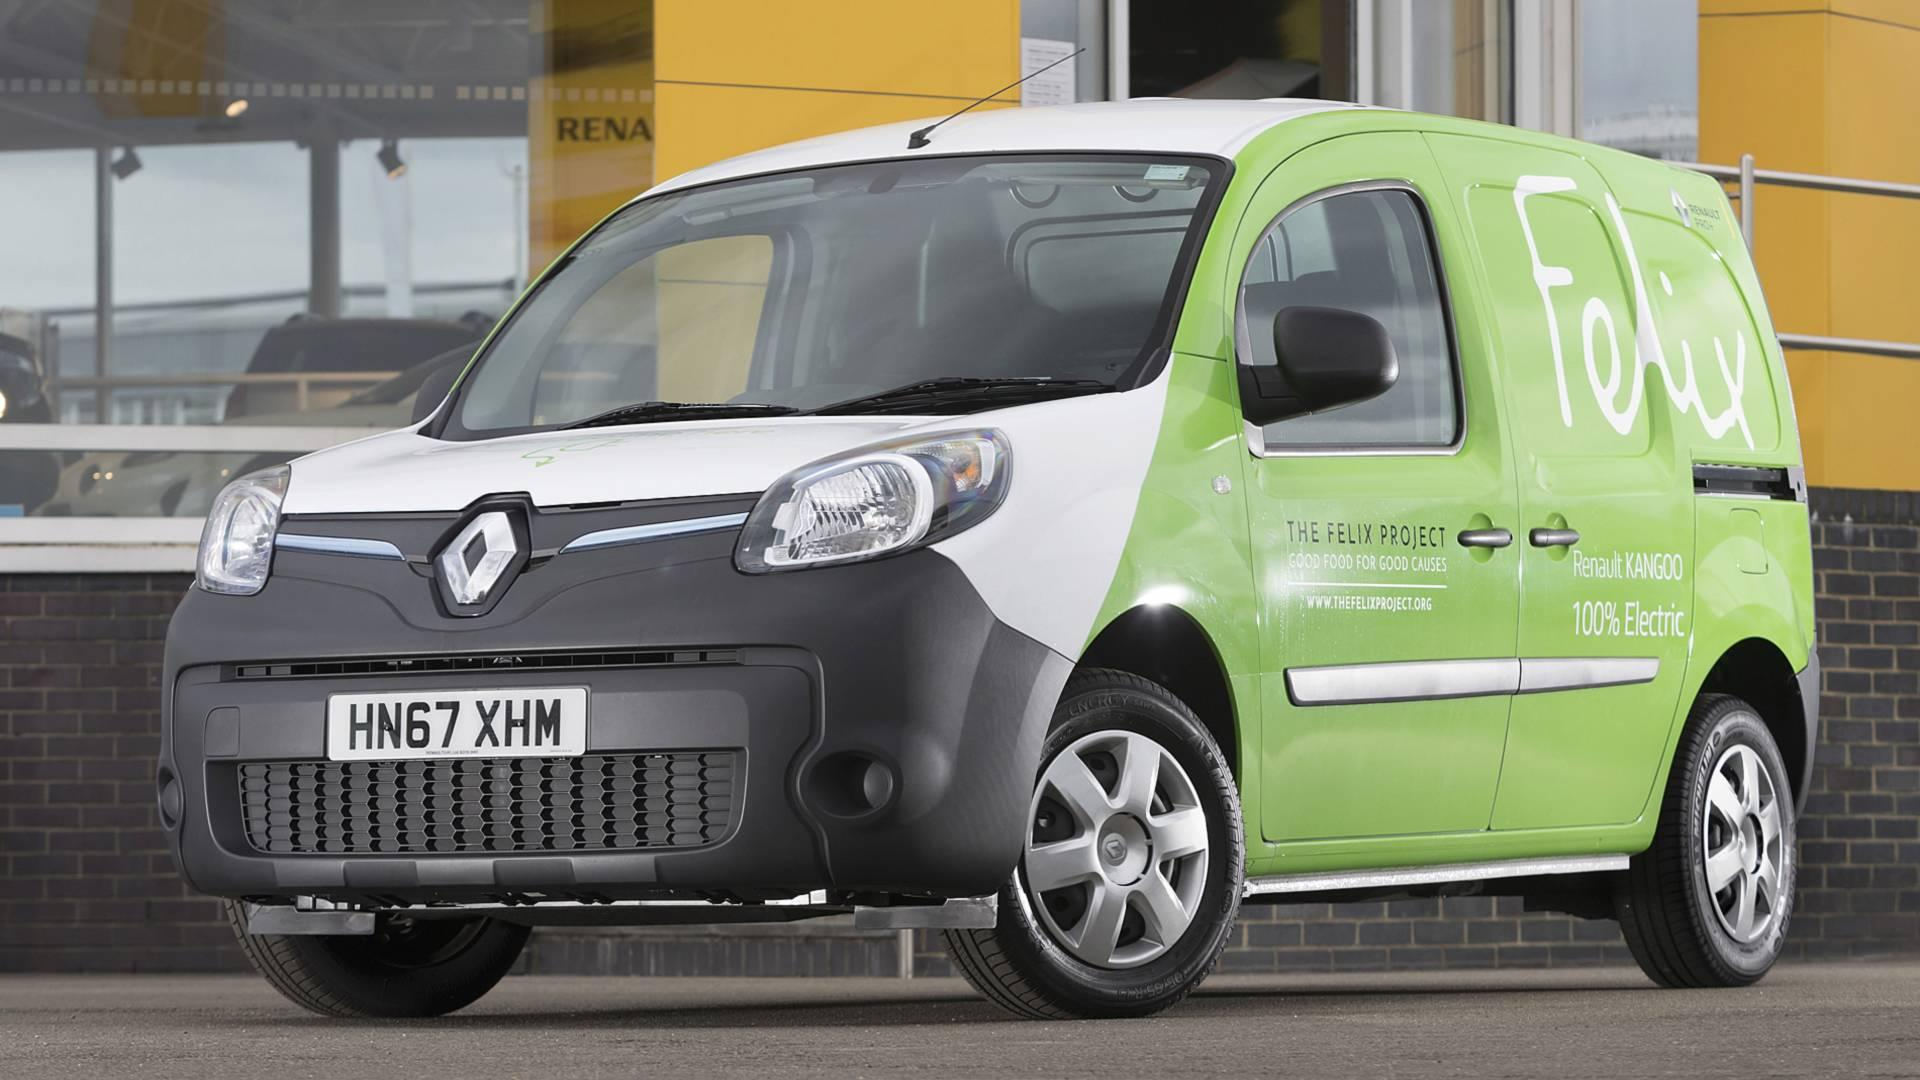 London charity goes green with new Renault electric vans